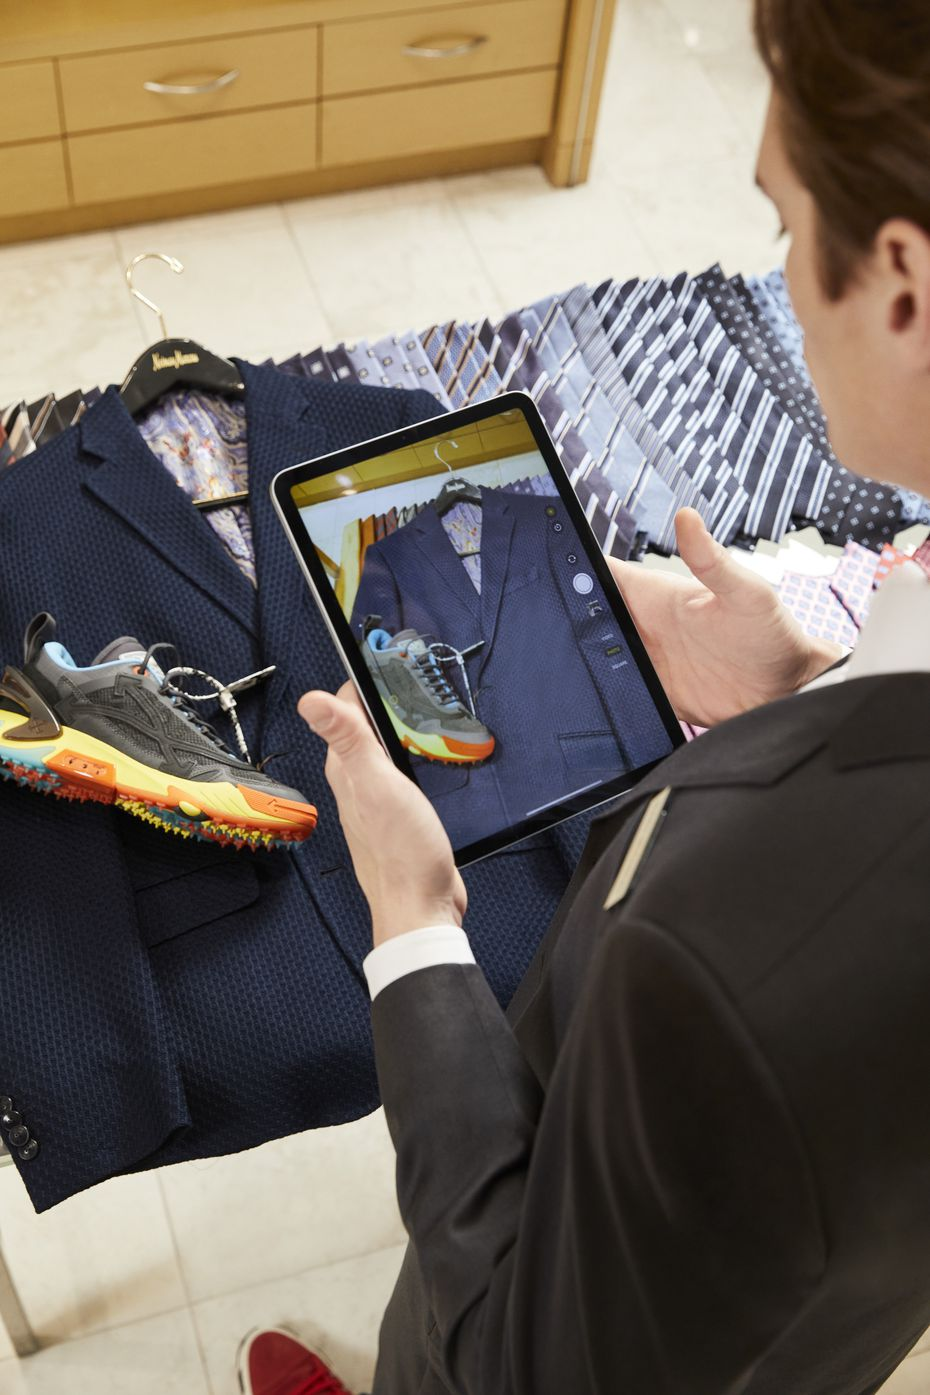 A Neiman Marcus men's stylist uses the Connect platform to help a customer shop remotely.